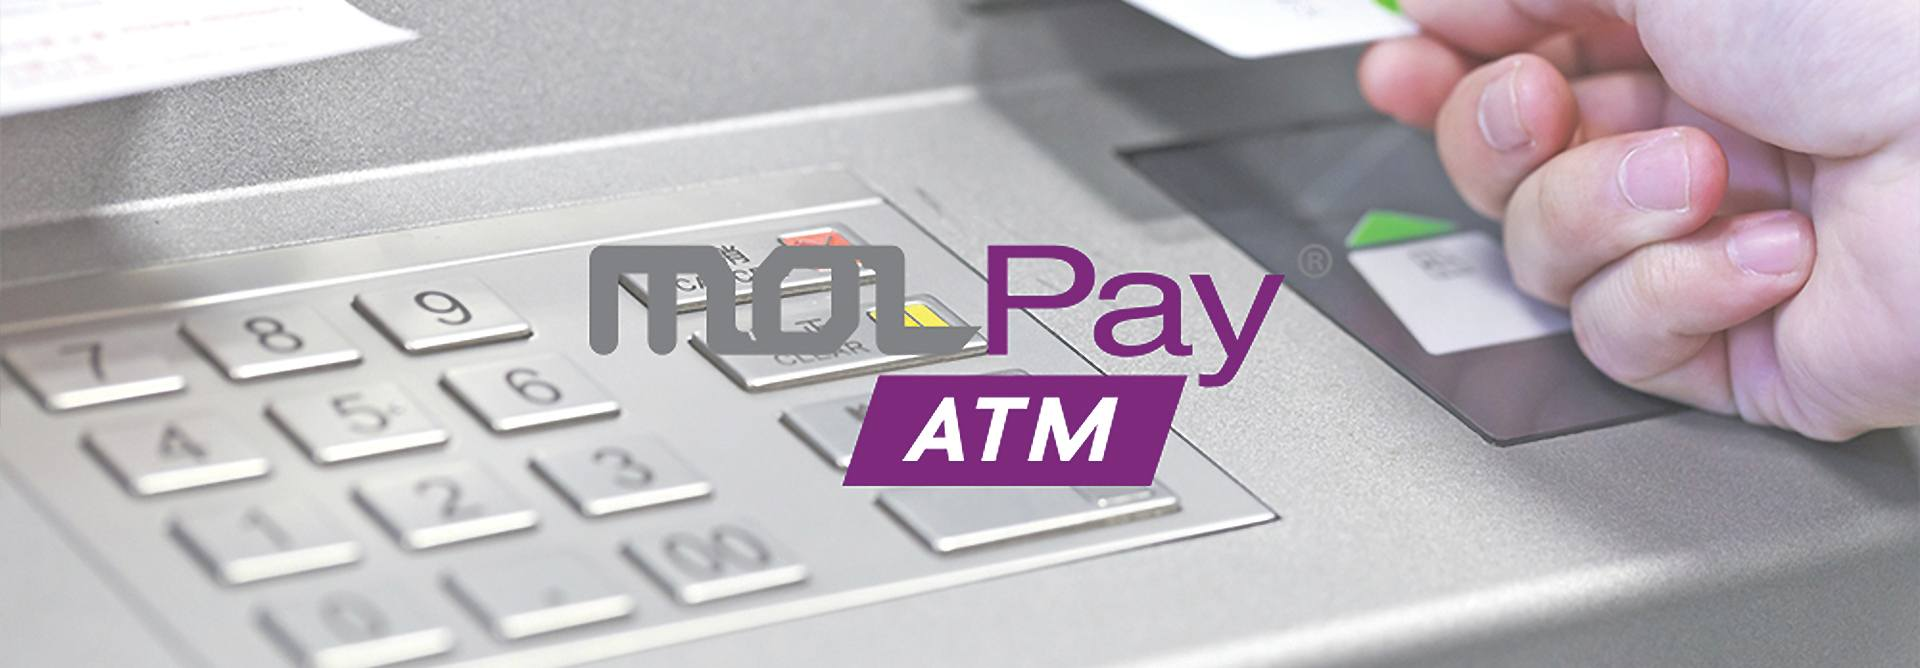 MOLPay ATM to capture huge number of online-to-offline transactions